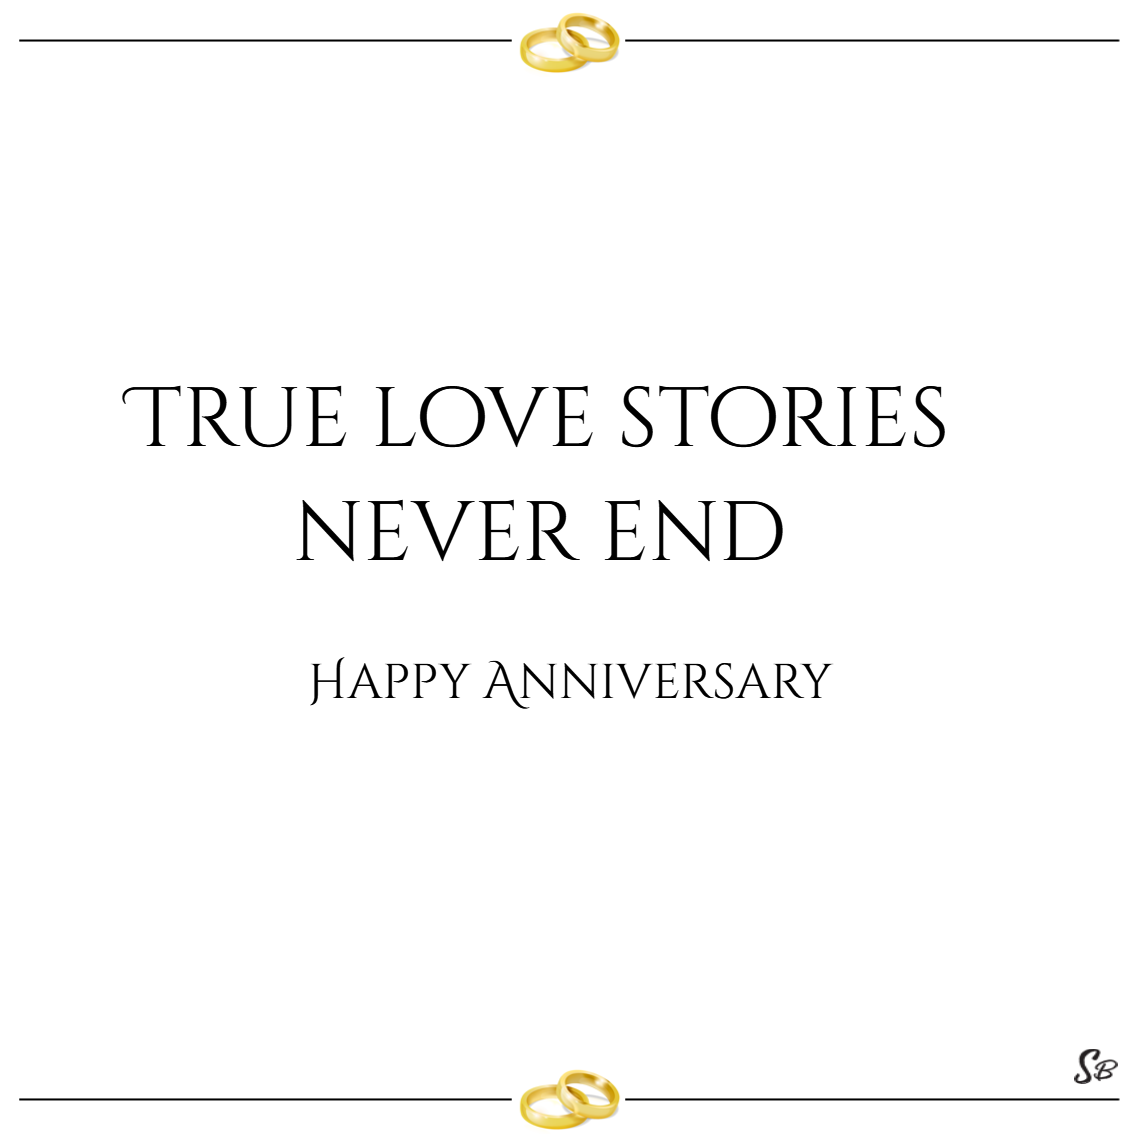 True Love Never End Wallpaper : True love stories never end Spirit Button